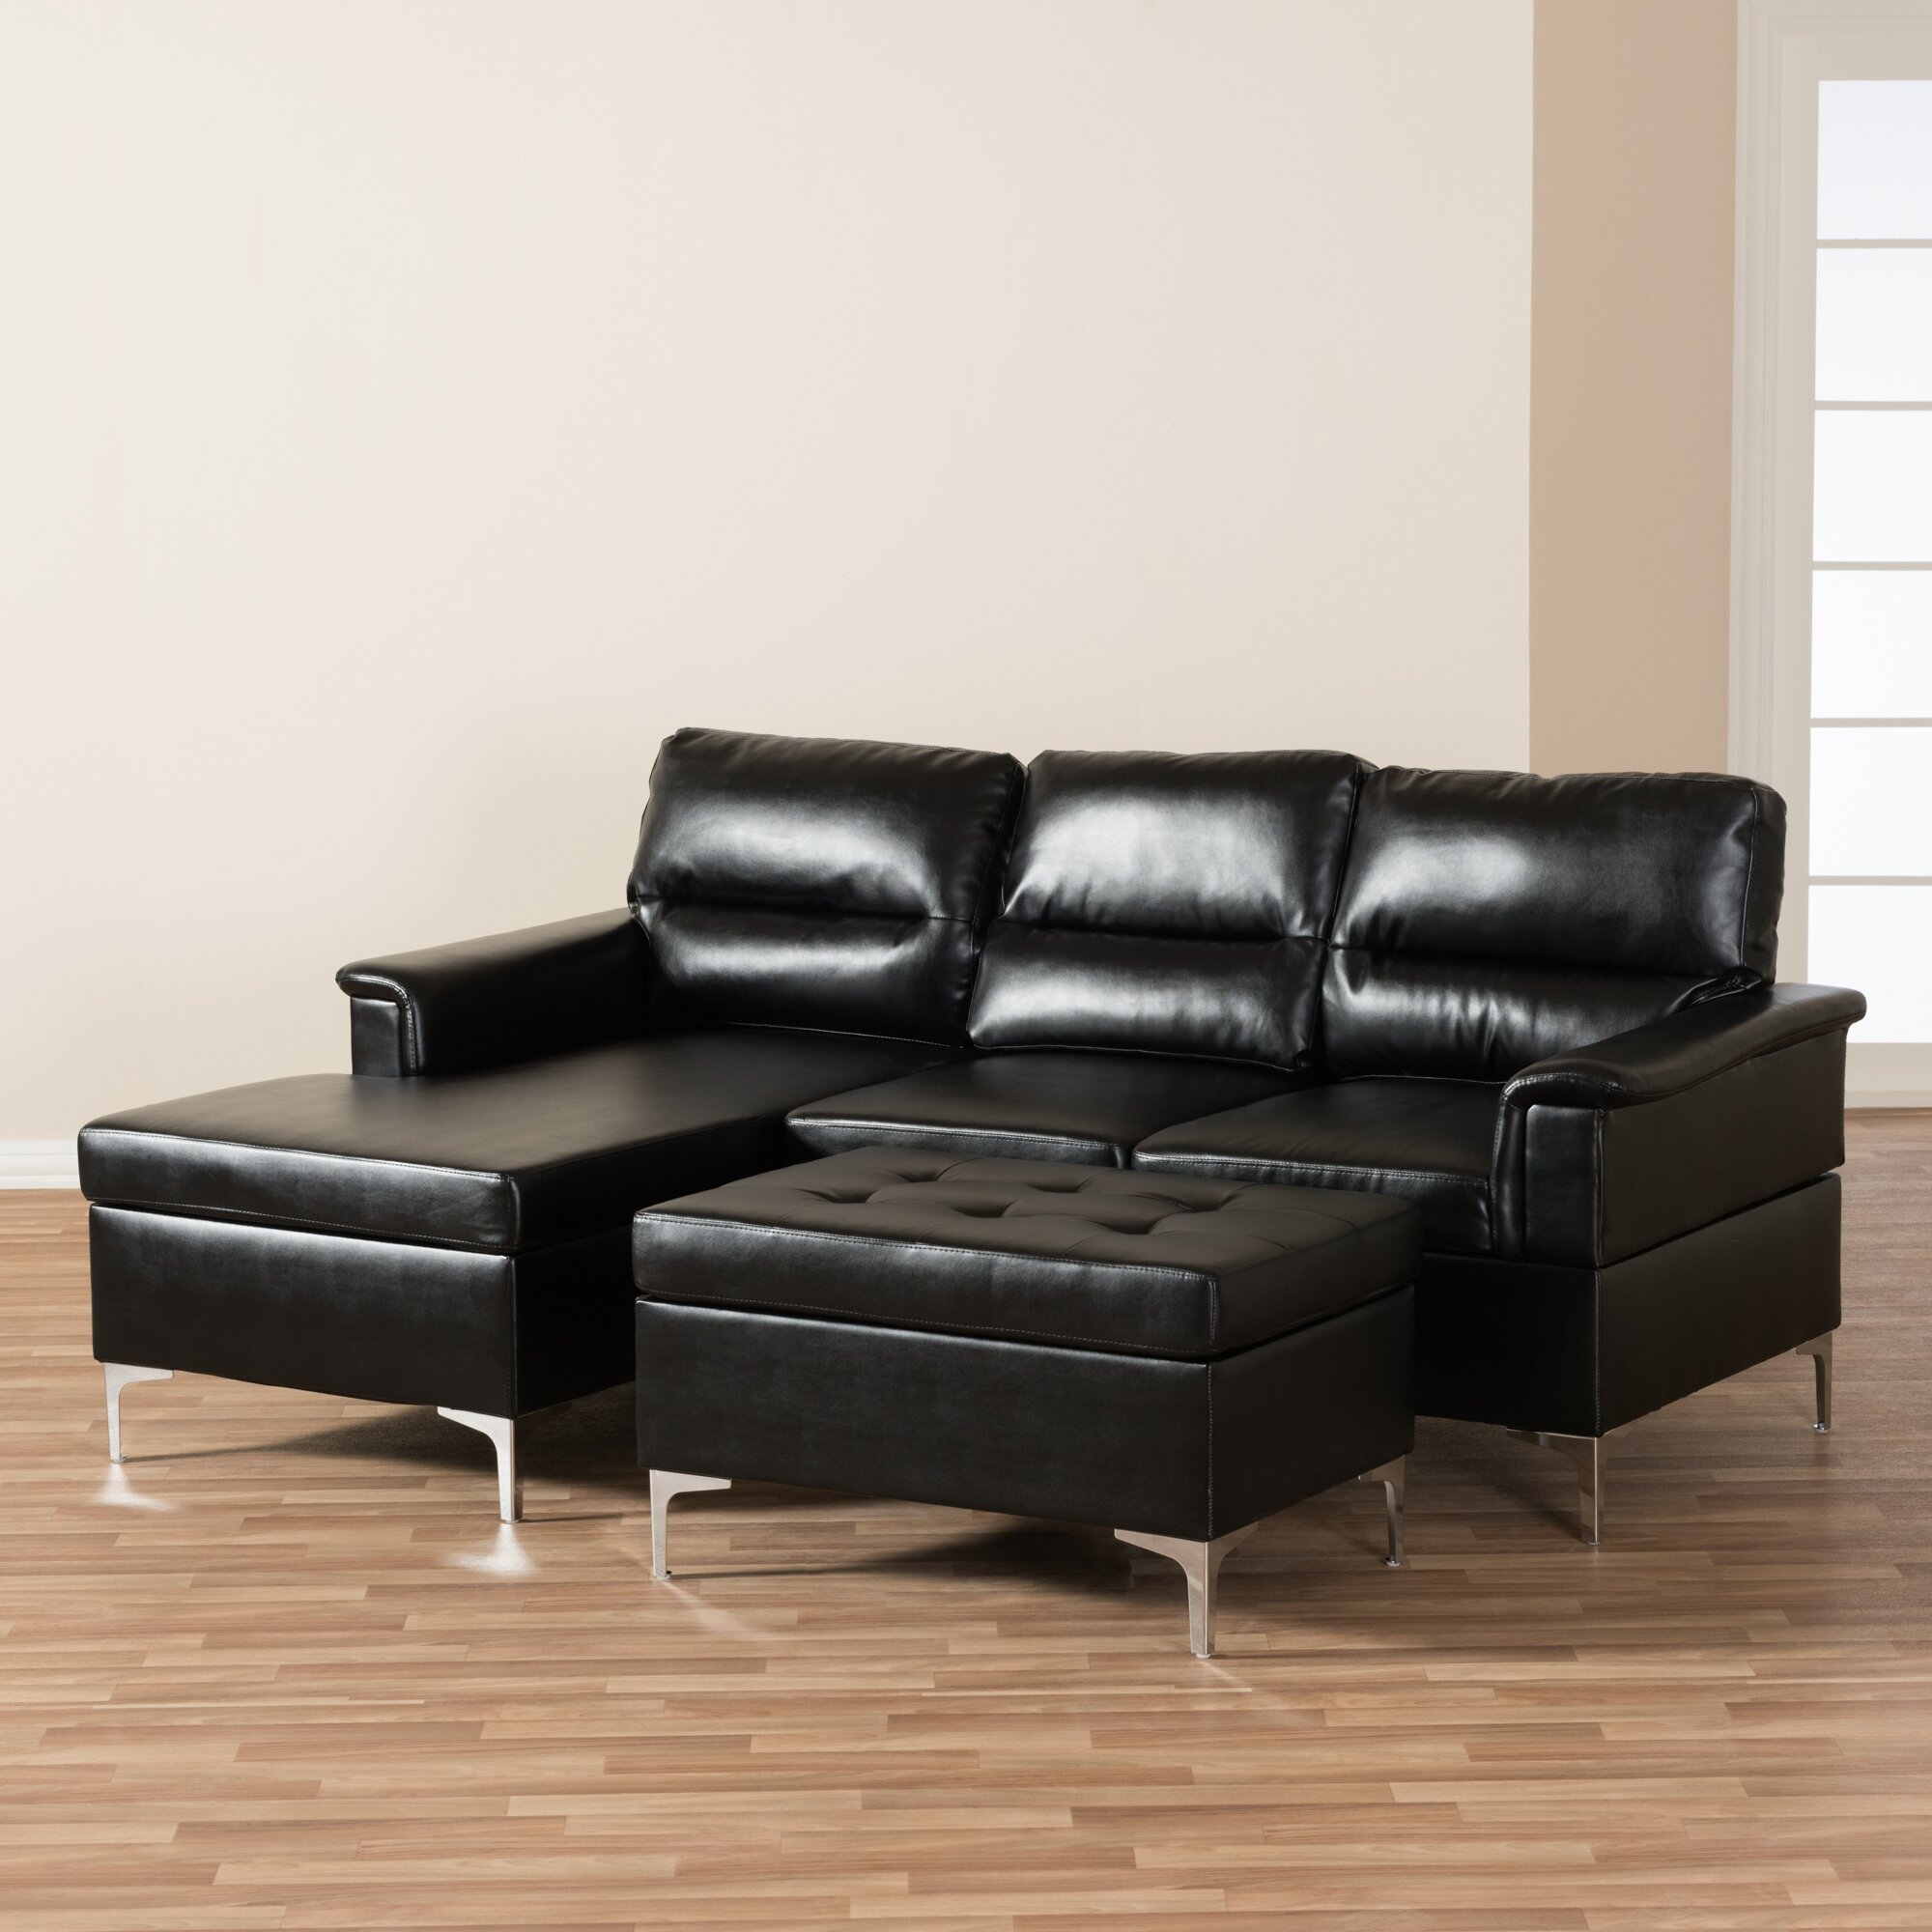 Wholesale interiors baxton studio teresa sectional for Small spaces sectional sofa black faux leather